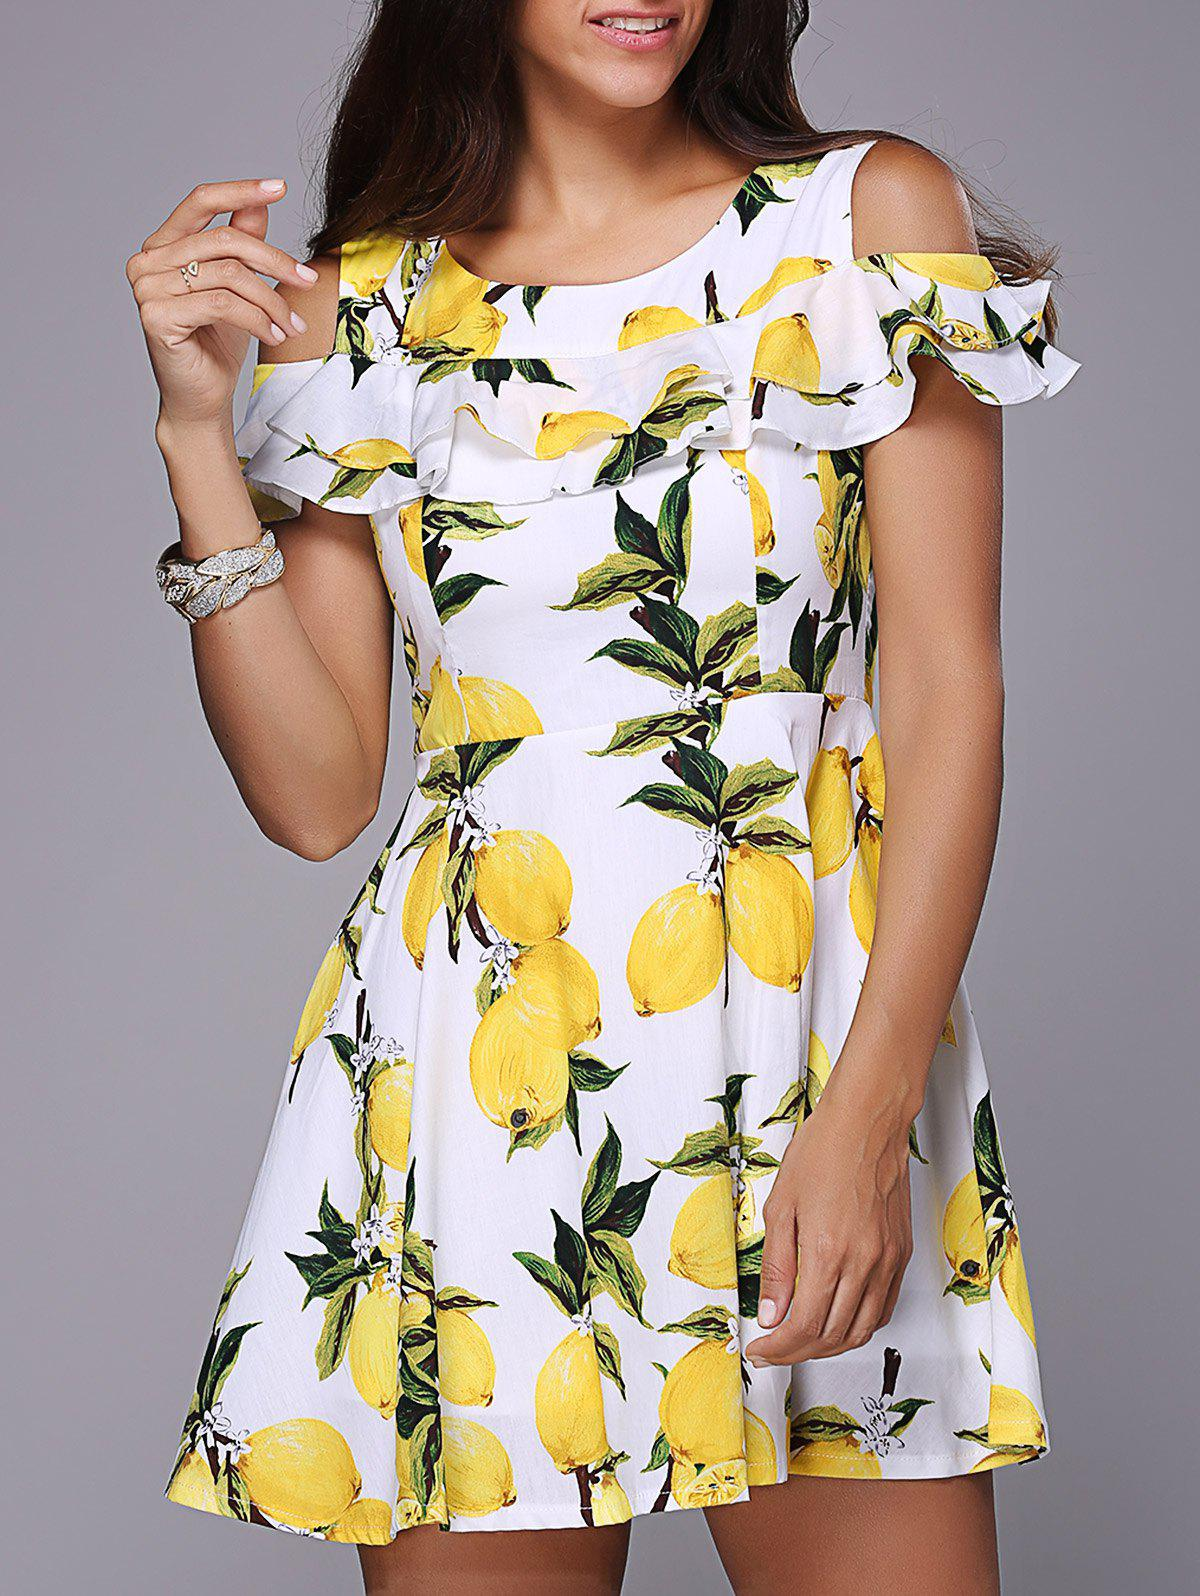 Stylish Women's Short Sleeve Lemon Print Flounced Hollow Out Dress - WHITE 2XL